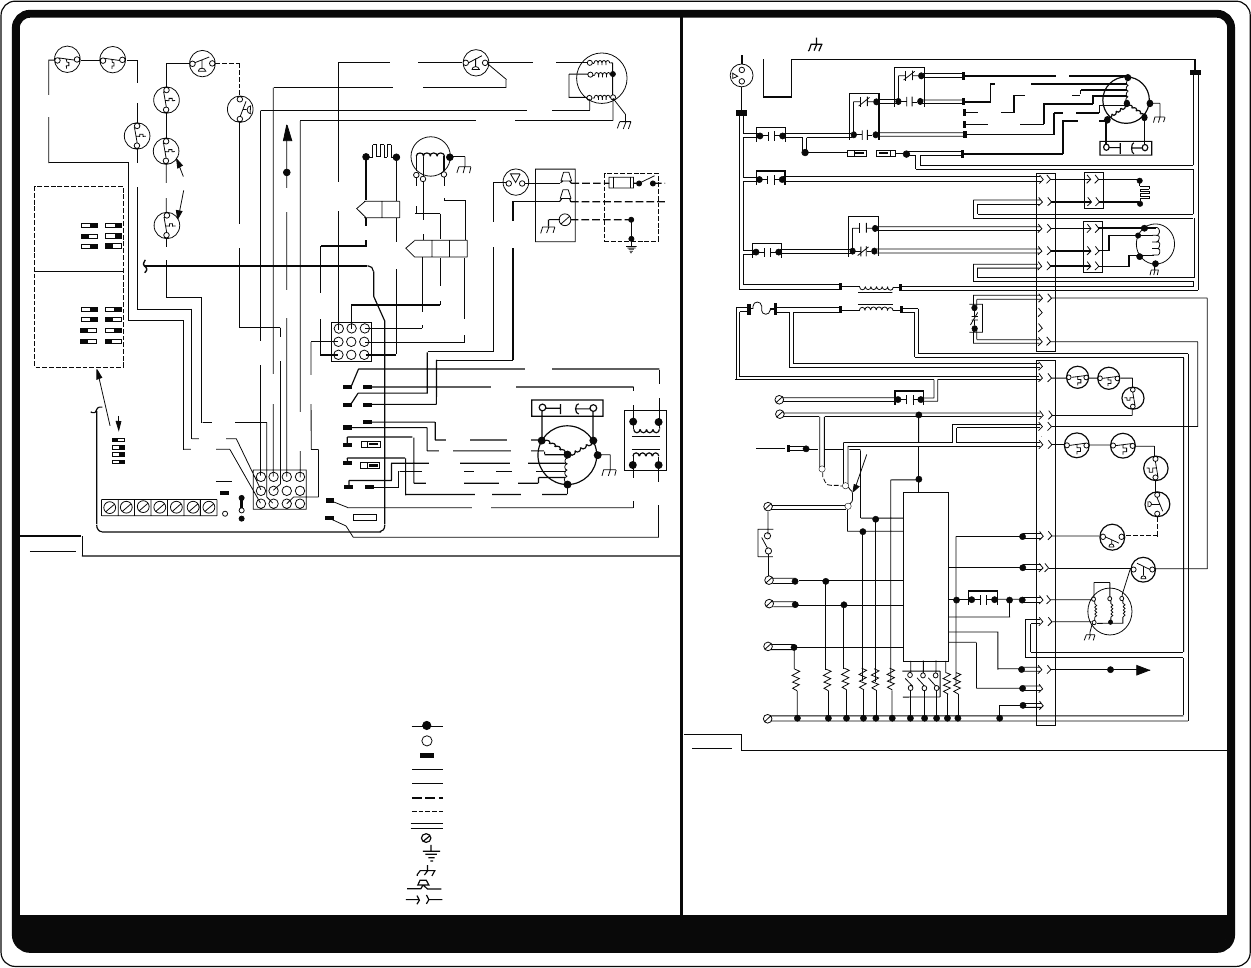 c2b73d22 c45f 43df a574 b6e707ea0cc7 bg8 bryant furnace diagram 100 images bryant gas heater wiring  at webbmarketing.co